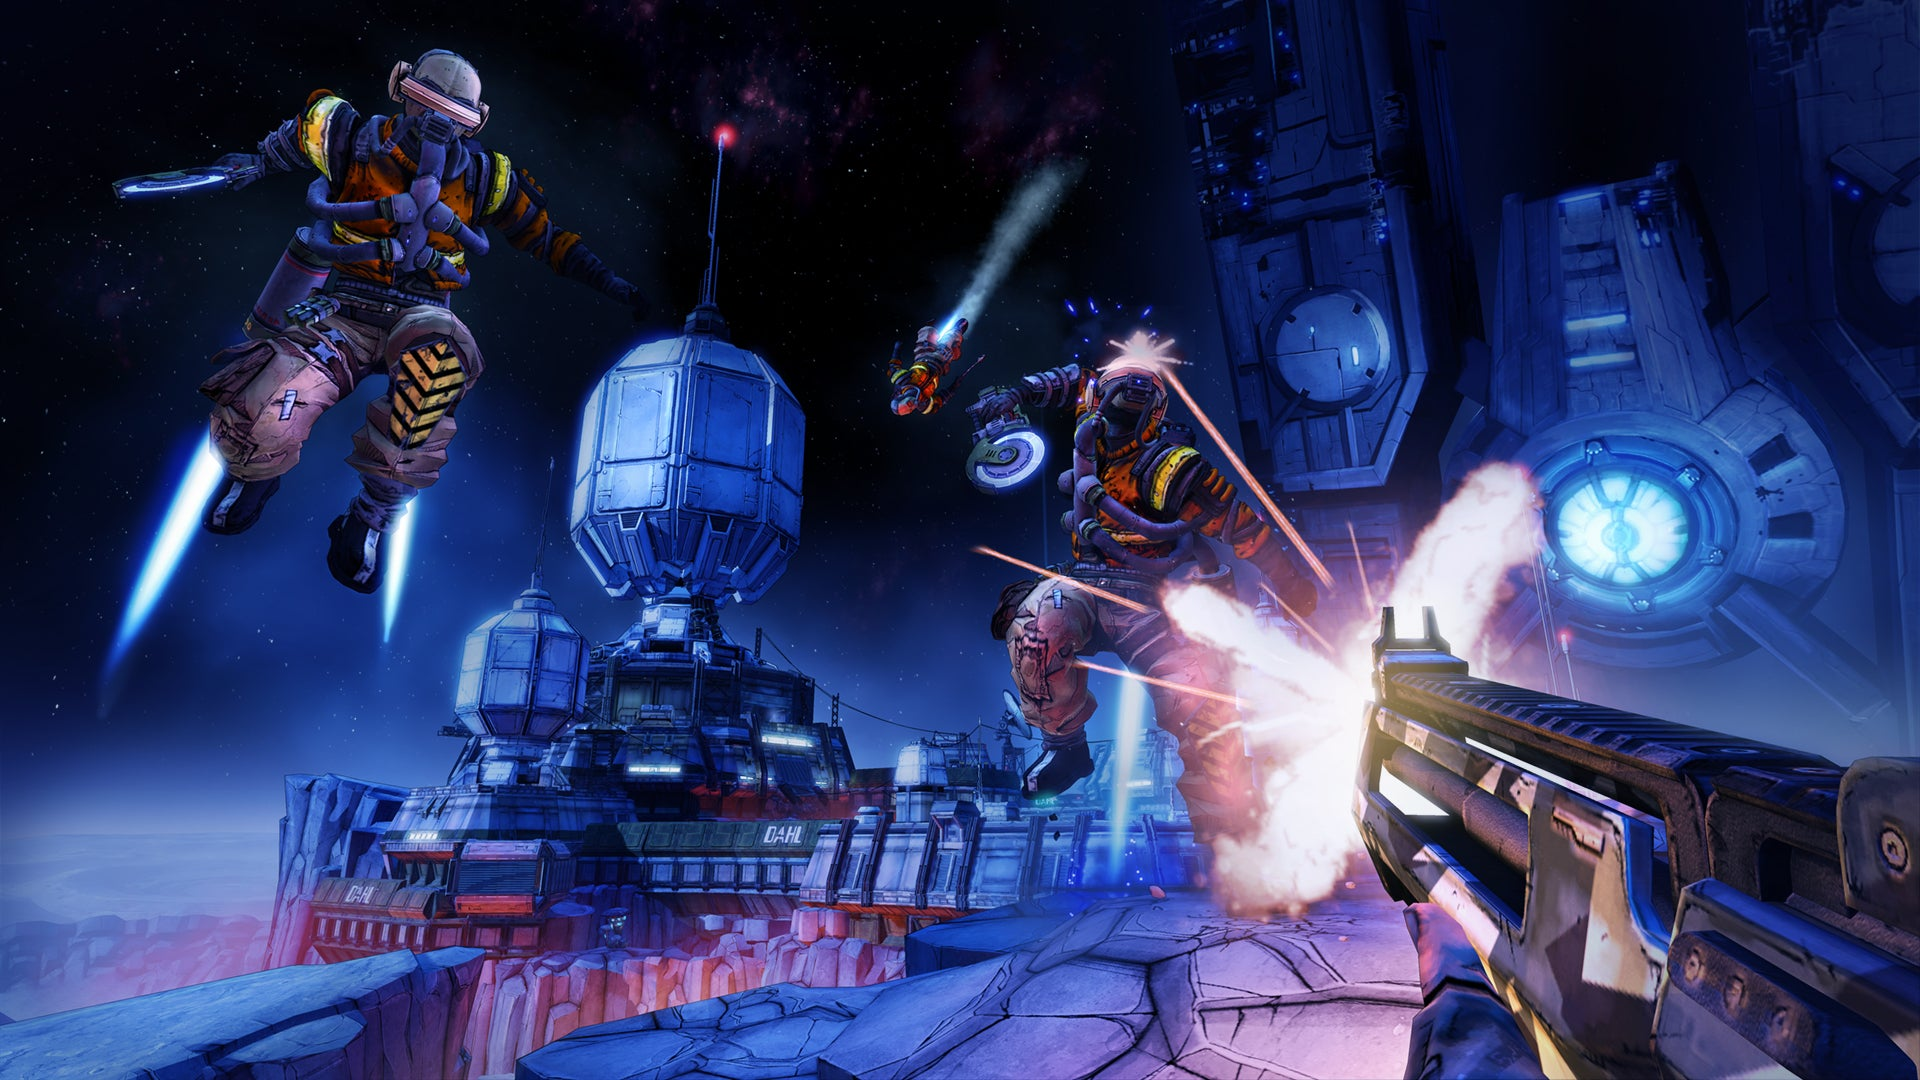 The Next Big Borderlands Game Will Let You Play As